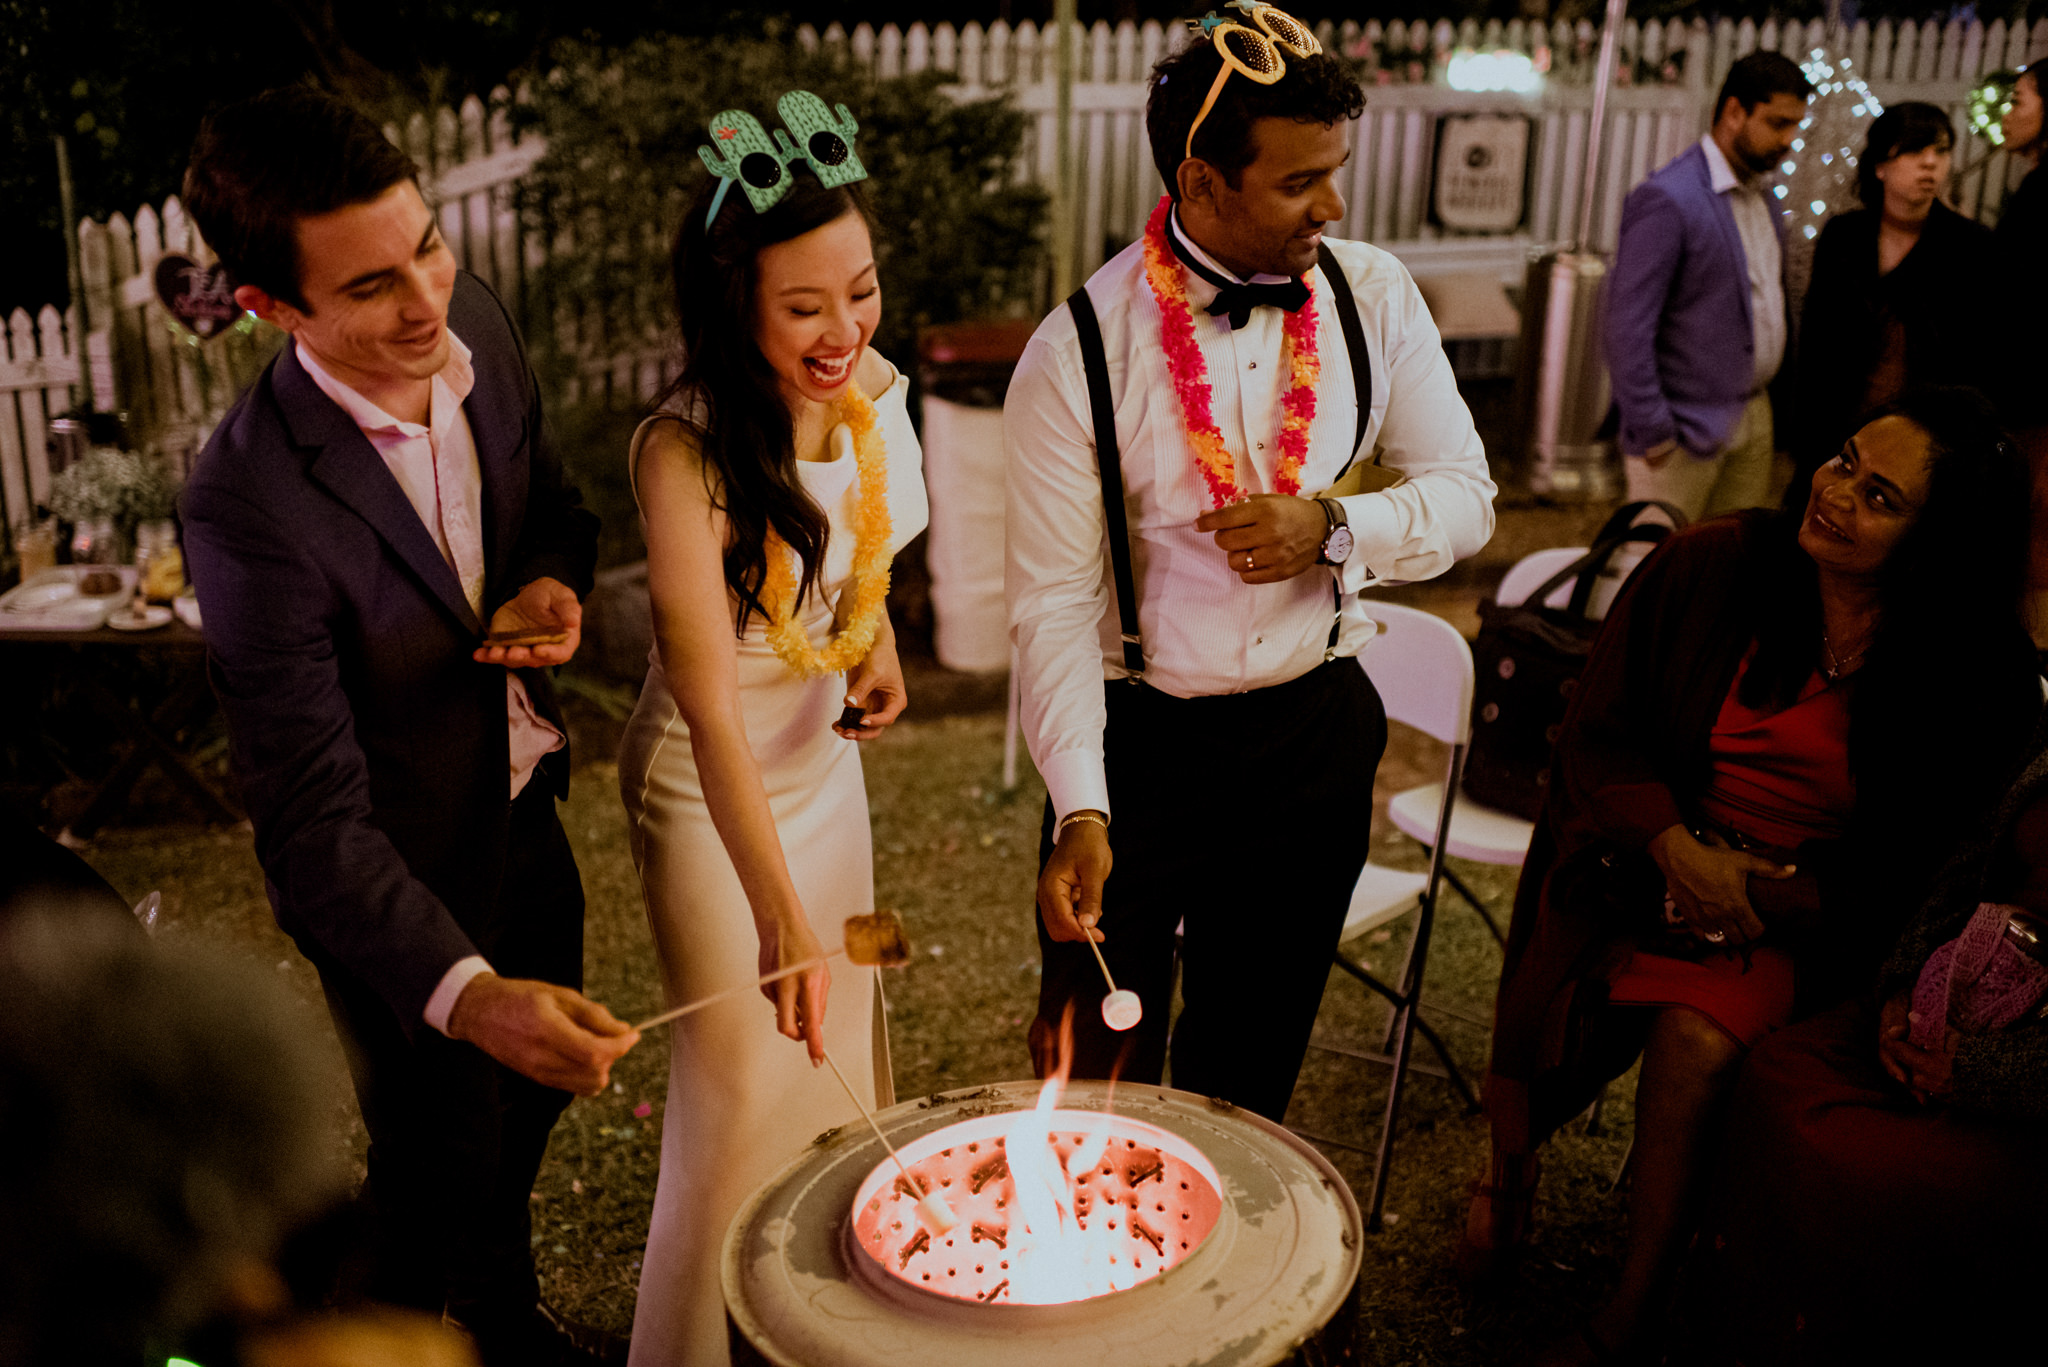 Bride and groom wearing novelty party accessories toast marshmallows in a fire pit